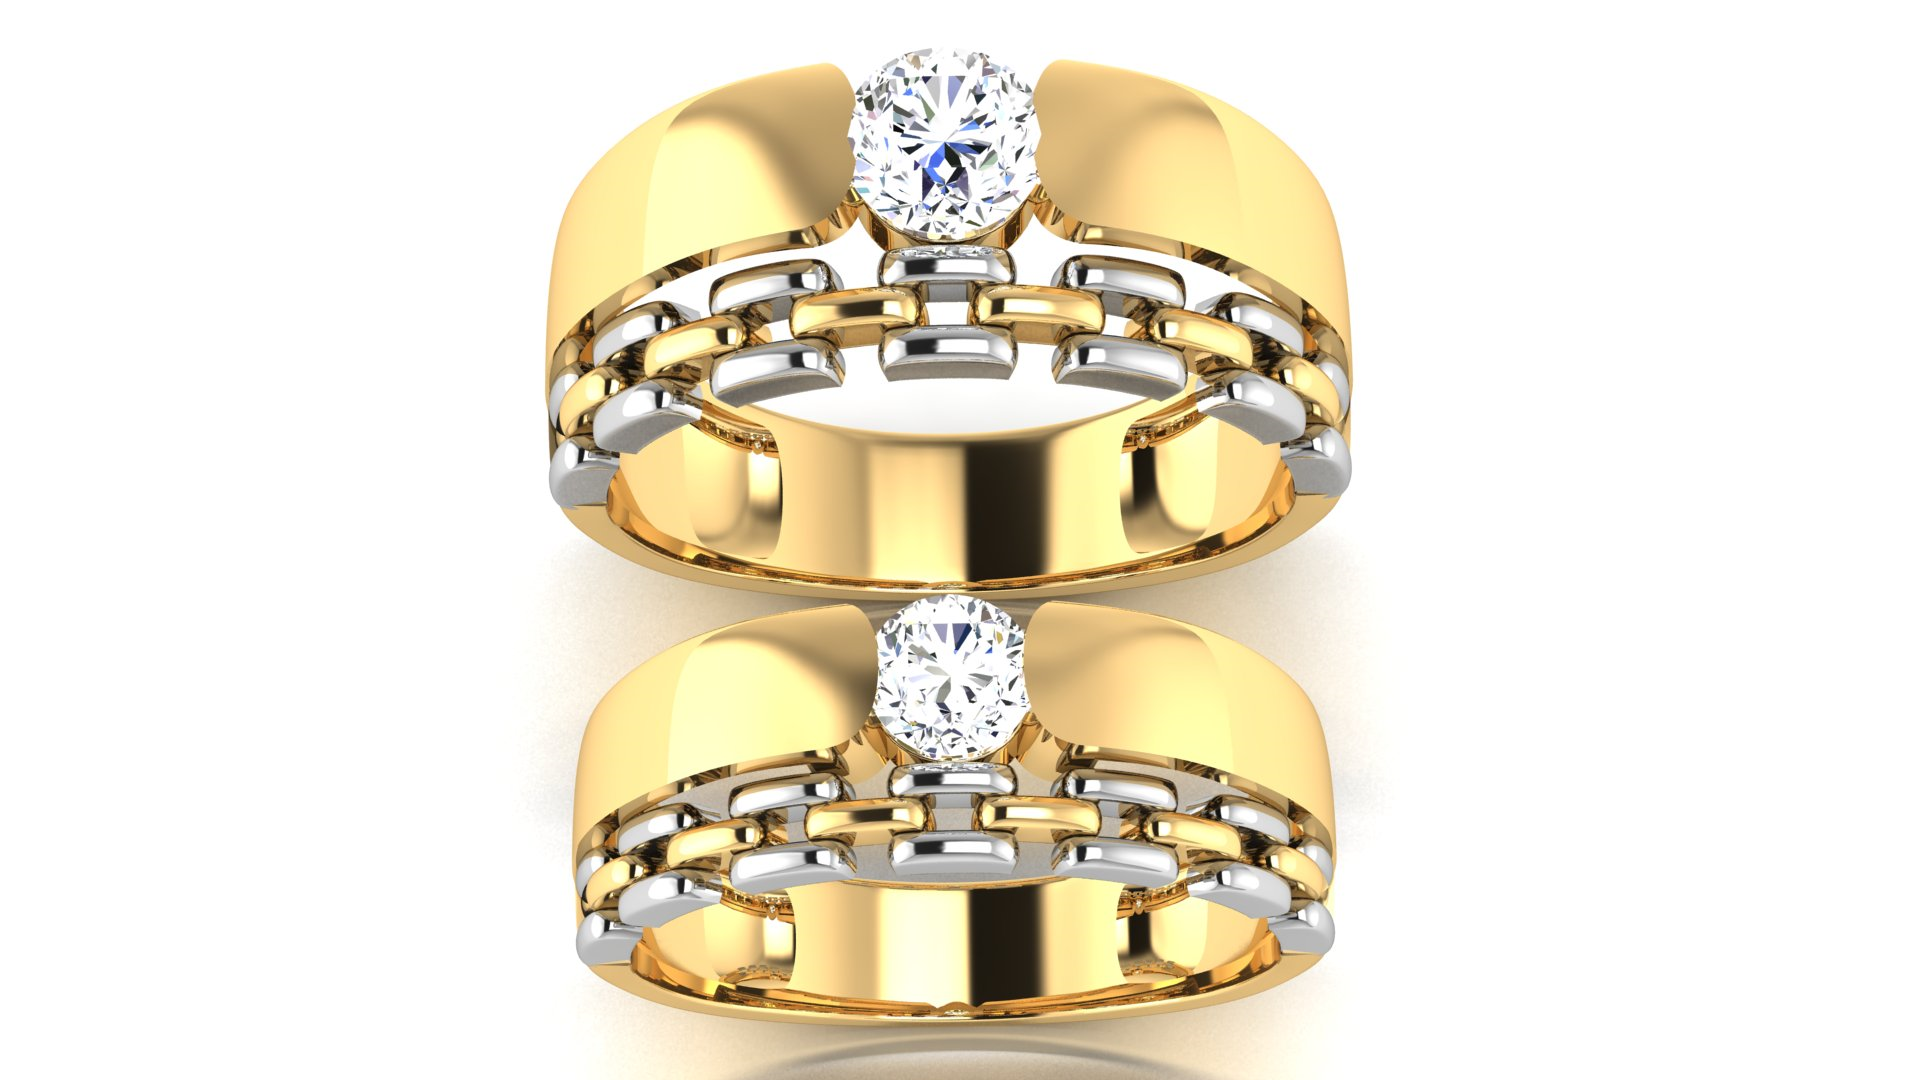 Chain Design Single Diamond Ring for Couples